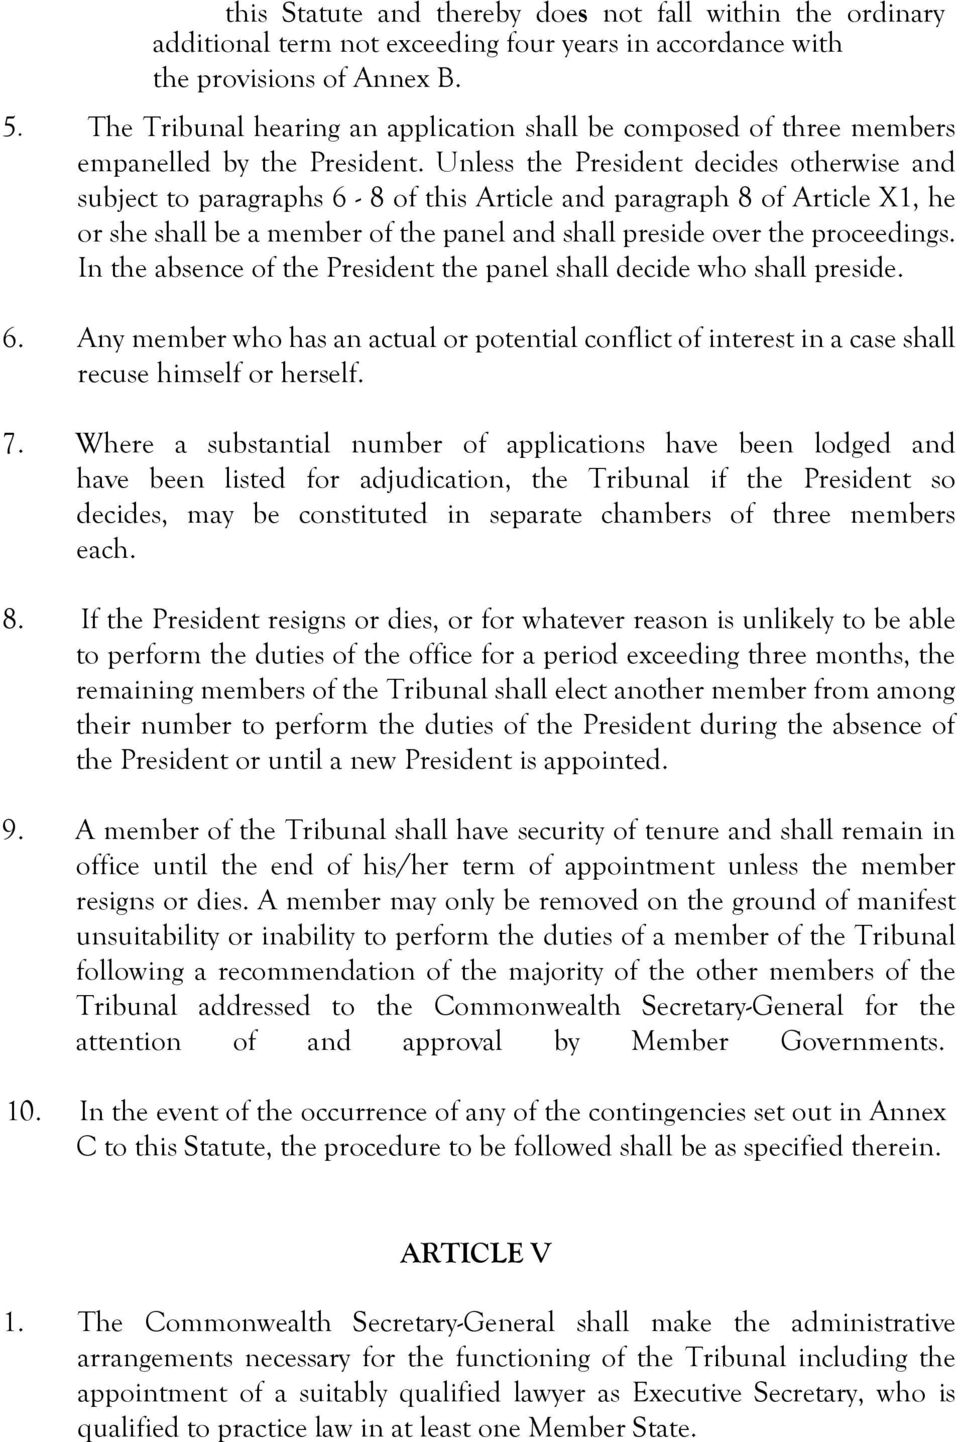 Unless the President decides otherwise and subject to paragraphs 6-8 of this Article and paragraph 8 of Article X1, he or she shall be a member of the panel and shall preside over the proceedings.